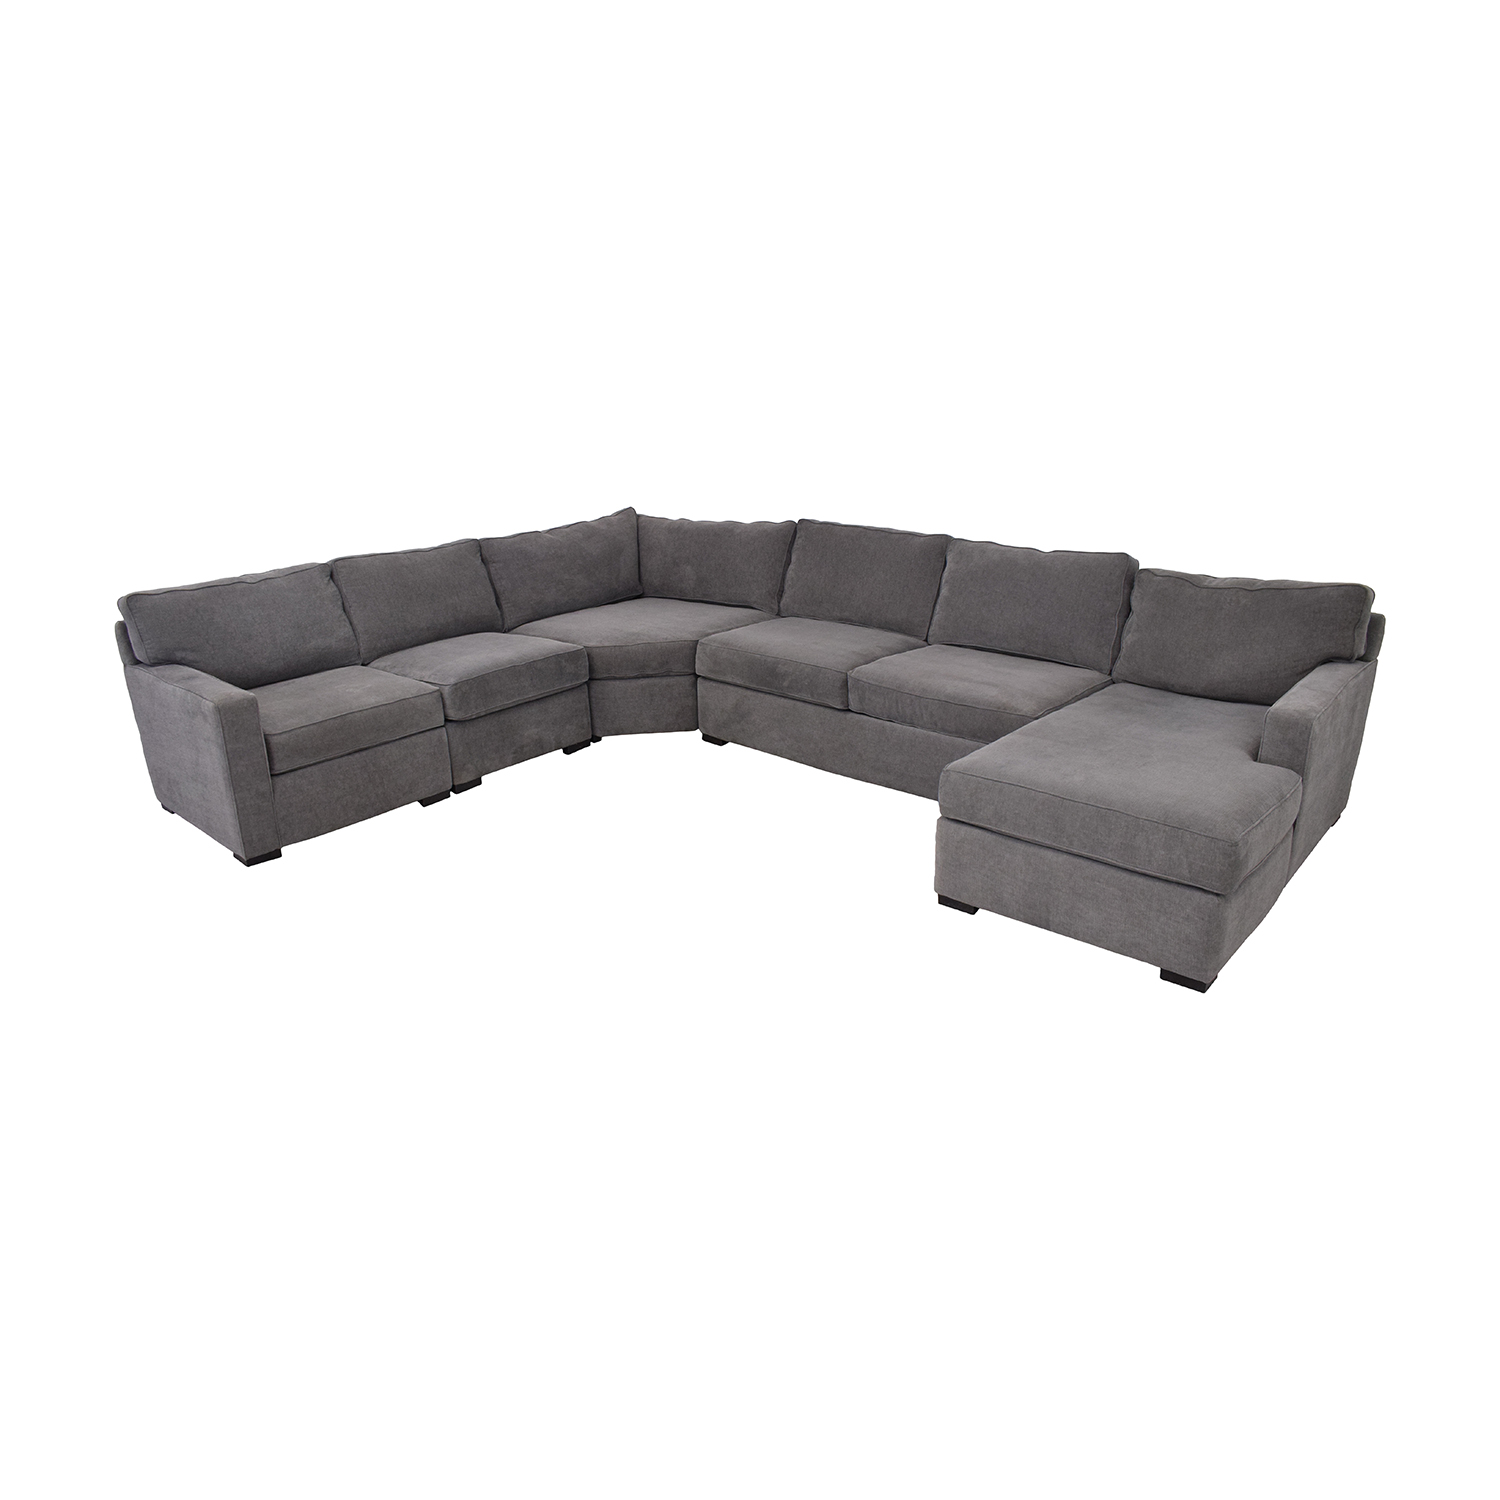 shop Macy's Macy's Radley Fabric 6-Piece Chaise Sectional Sofa with Corner Piece and Ottoman online